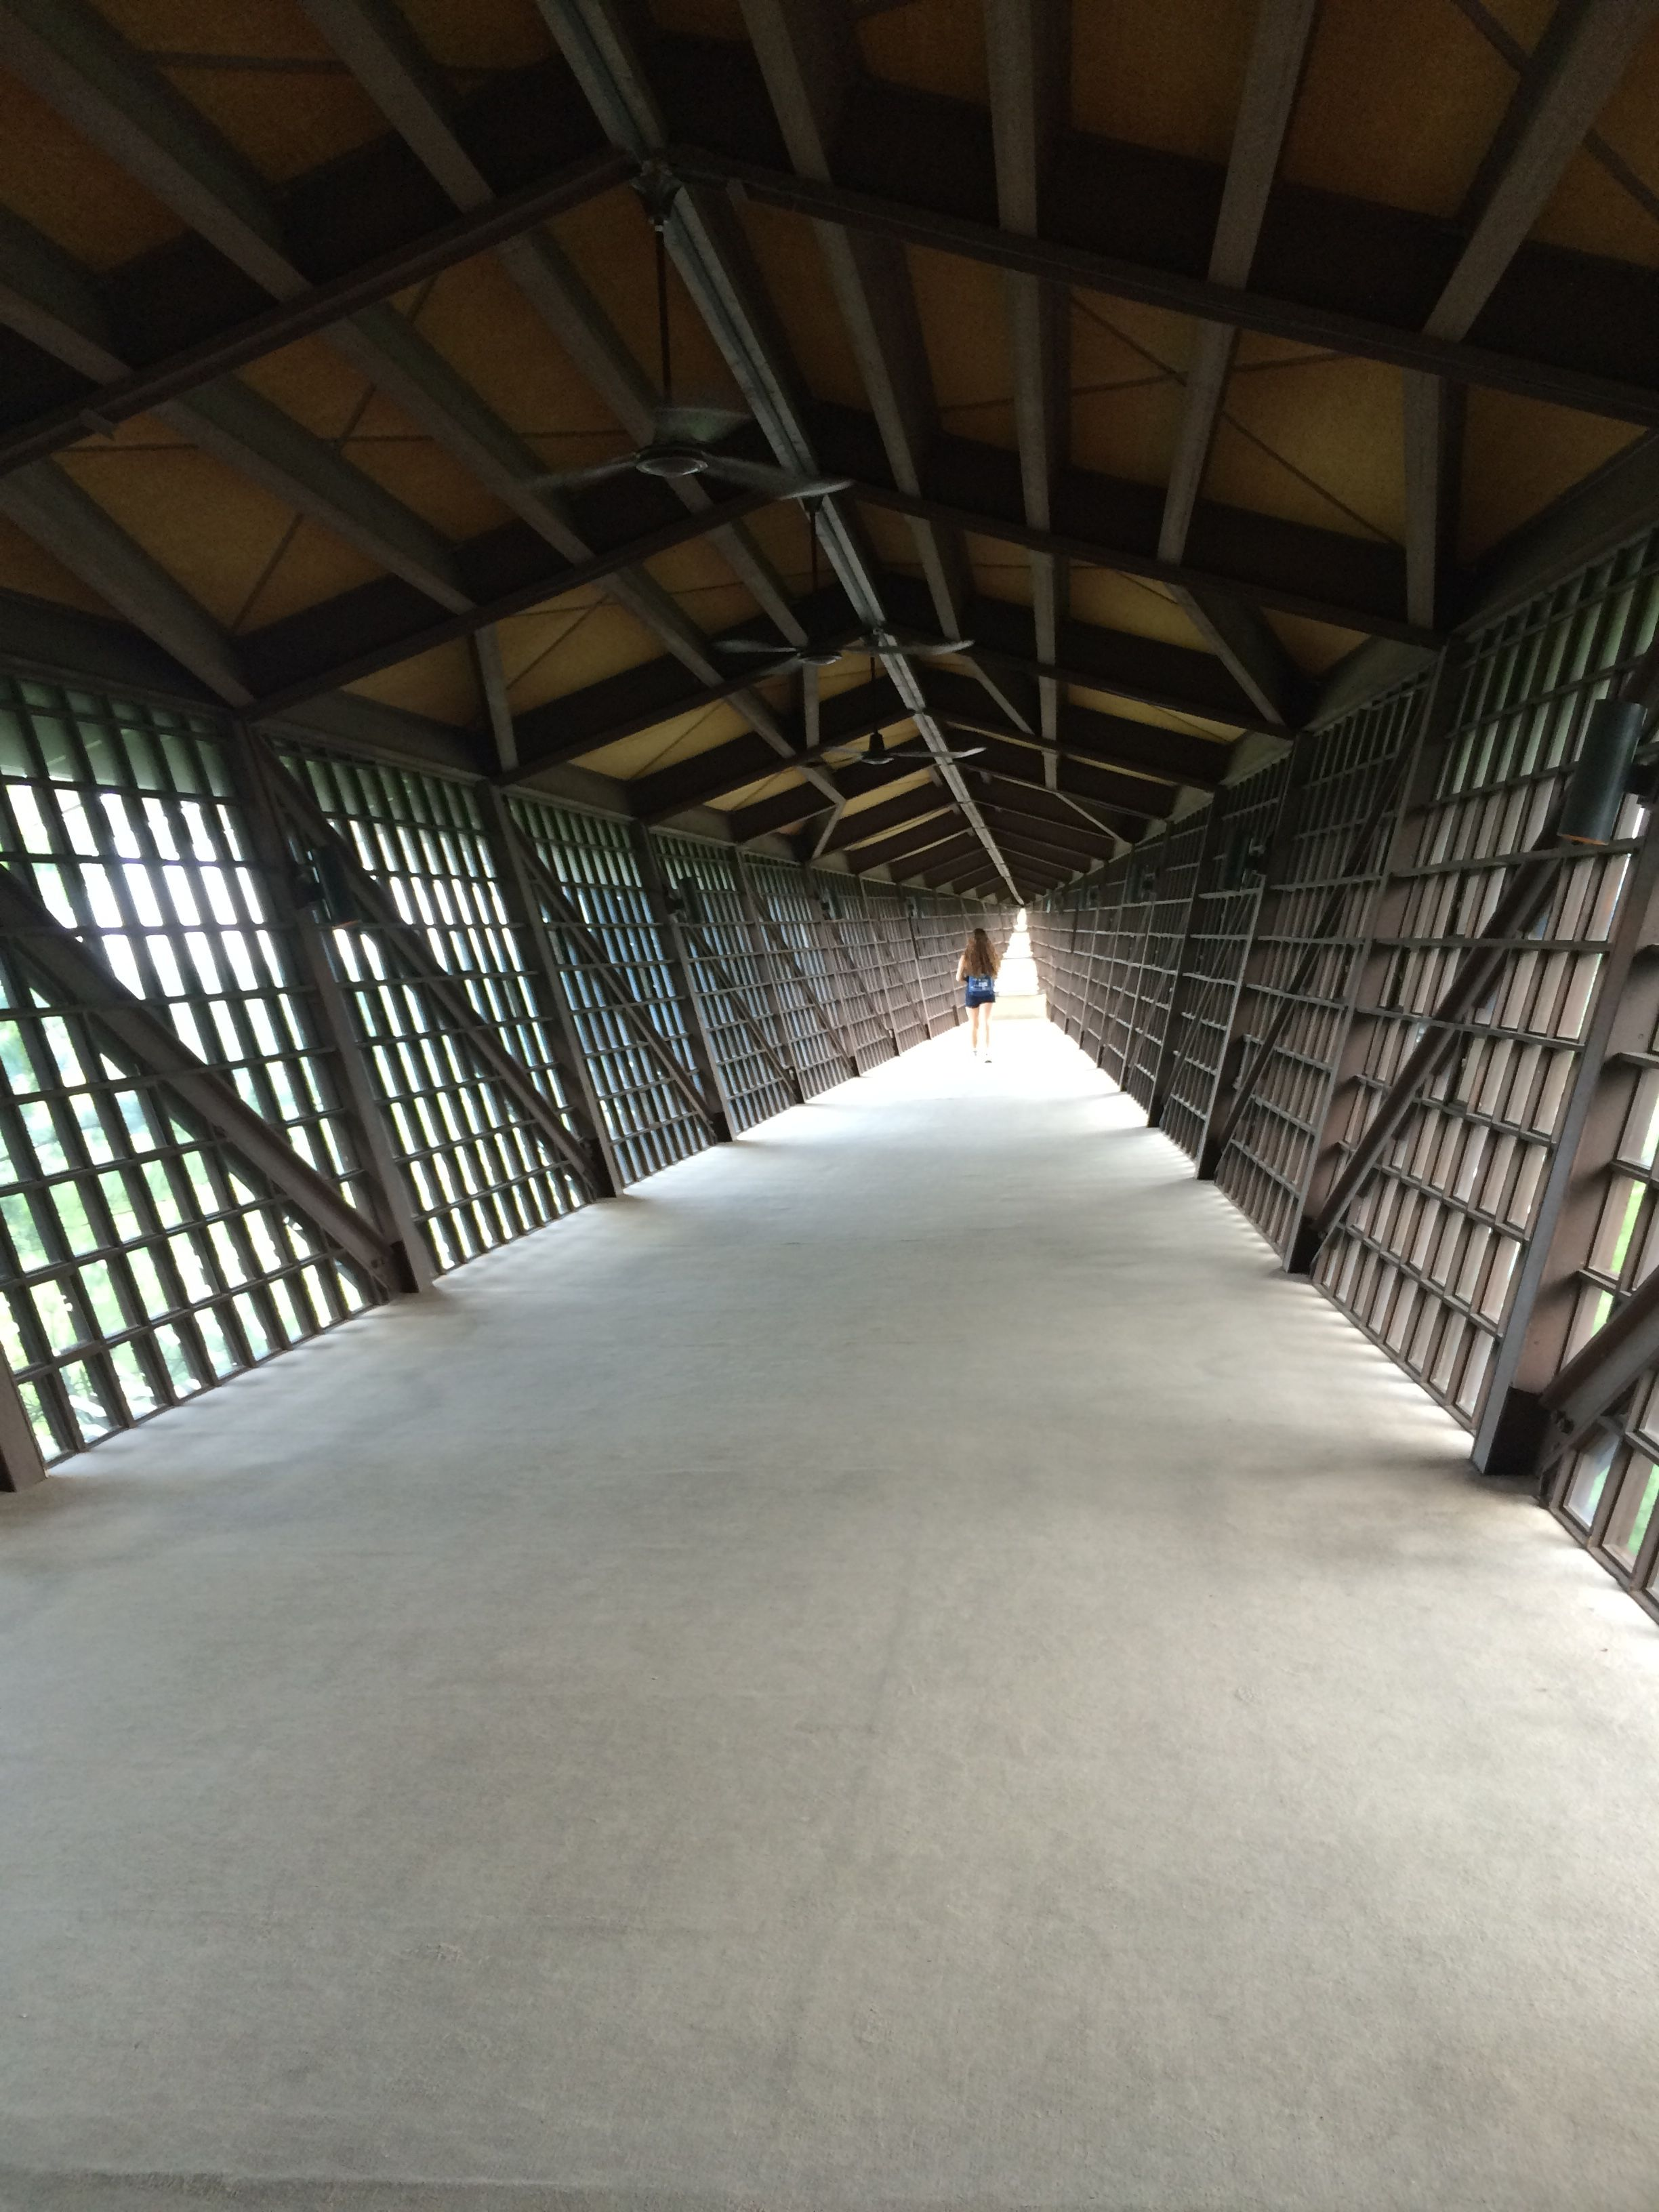 The view into the Infinity Room.